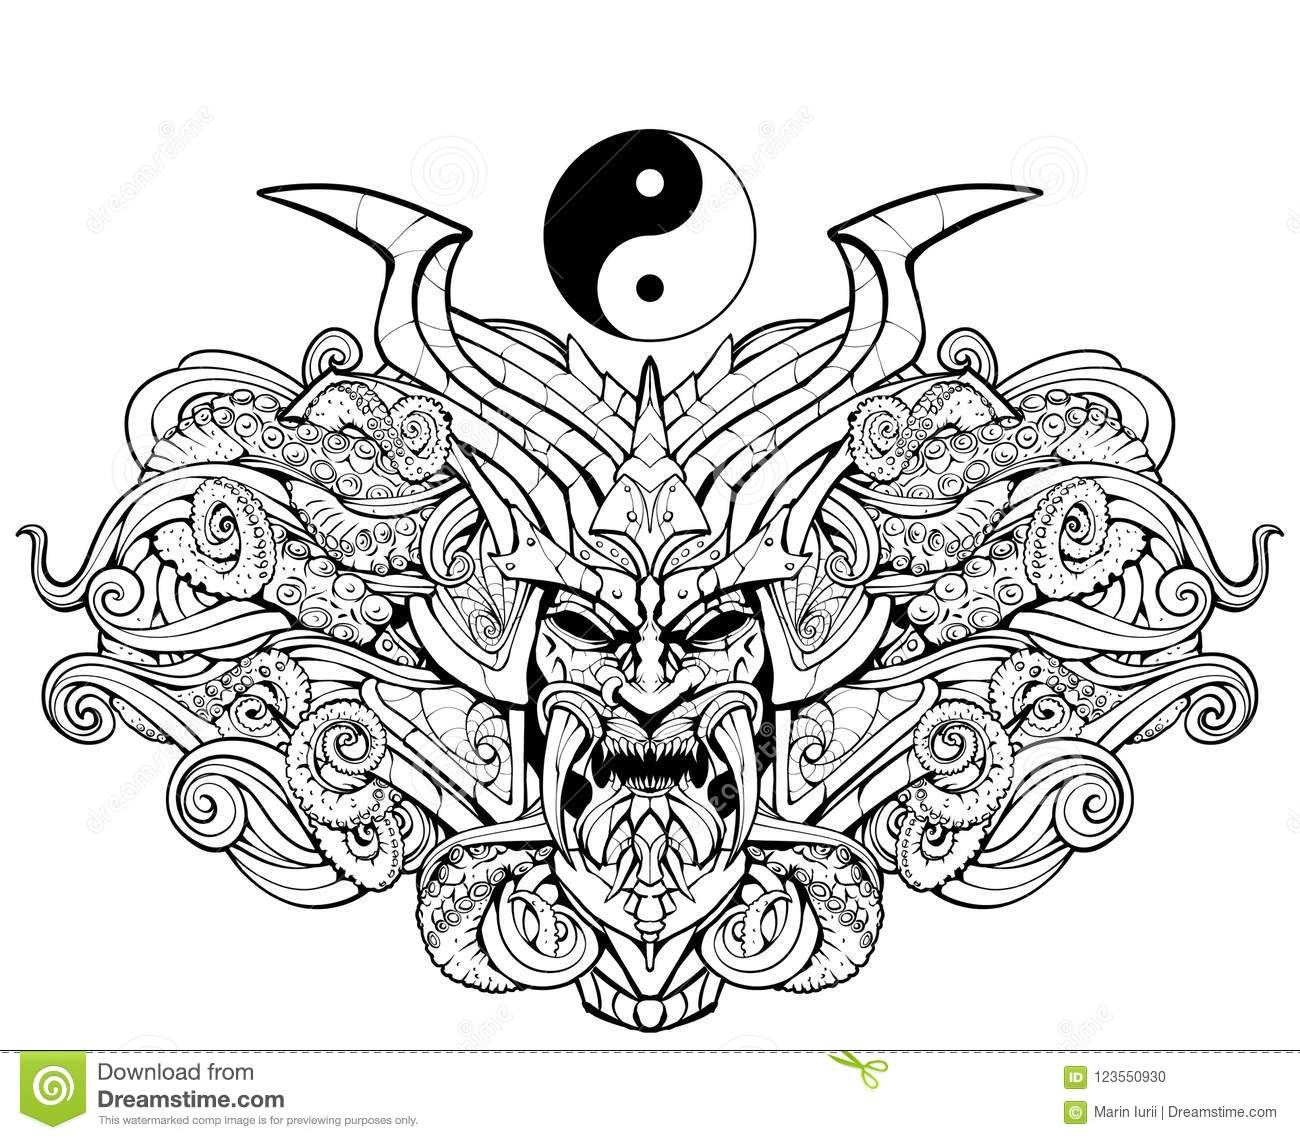 Coloring Page For Adults Sinister Samurai Mask